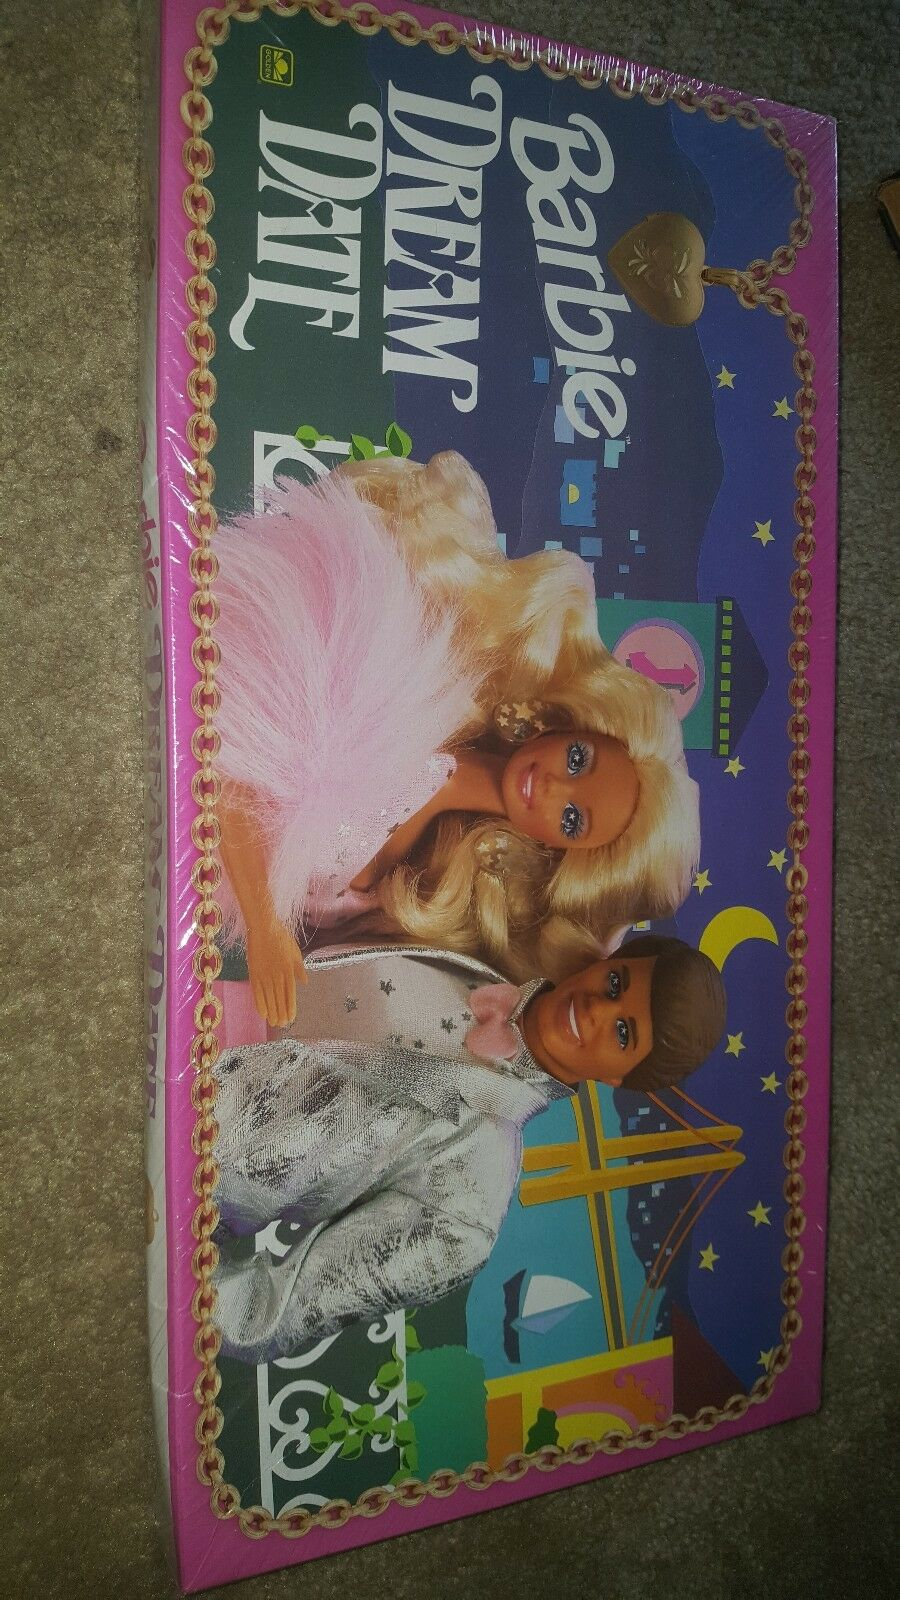 1992 1992 1992 Barbie Dream Date Vintage Board Game Mattel 3cf40a